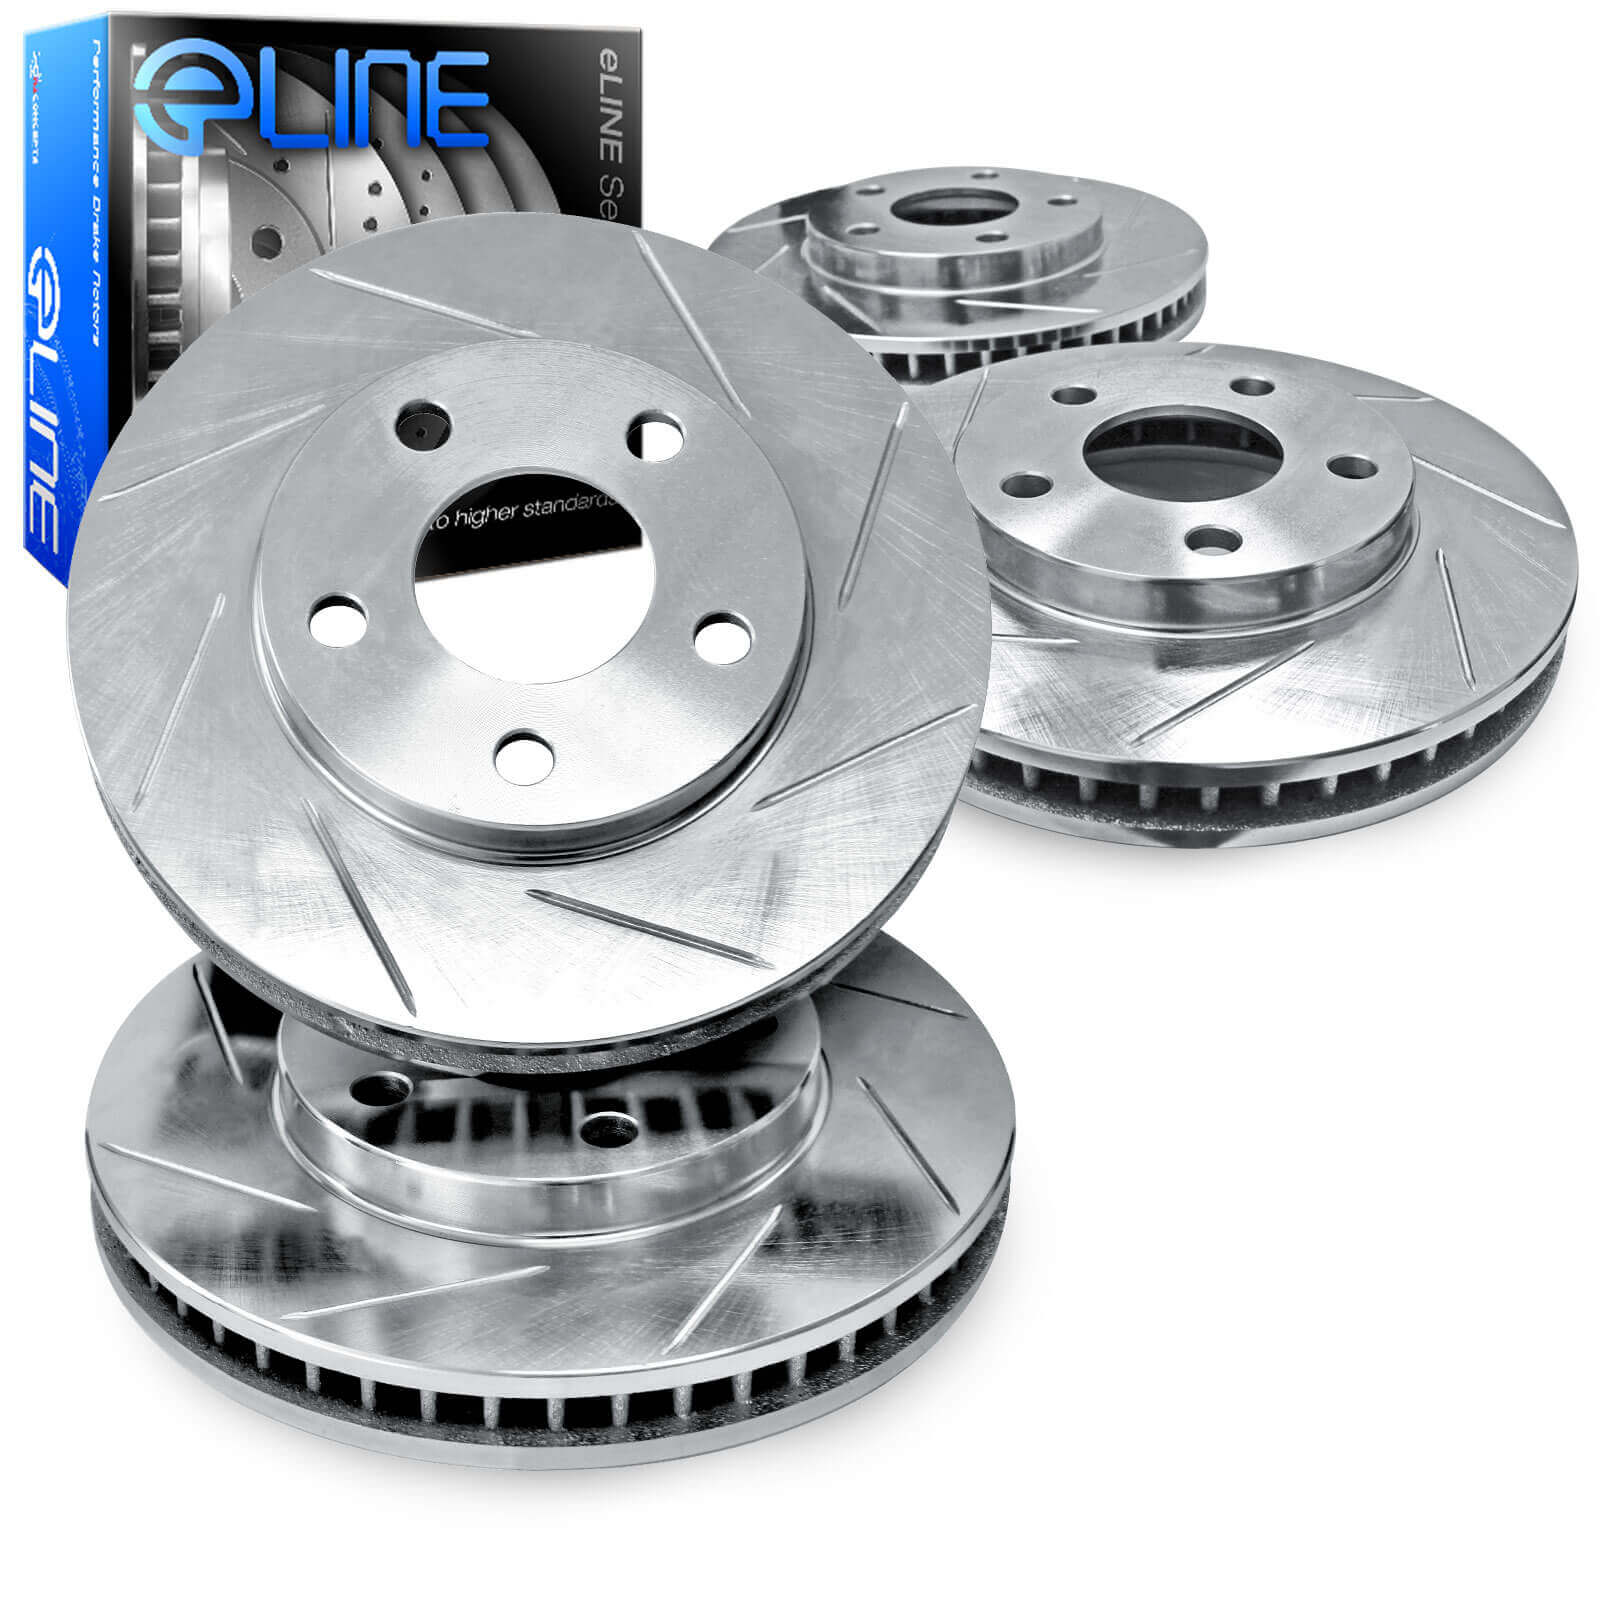 For Subaru Forester Impreza Front Rear Blank Brake Rotors+Semi-Met Brake Pads